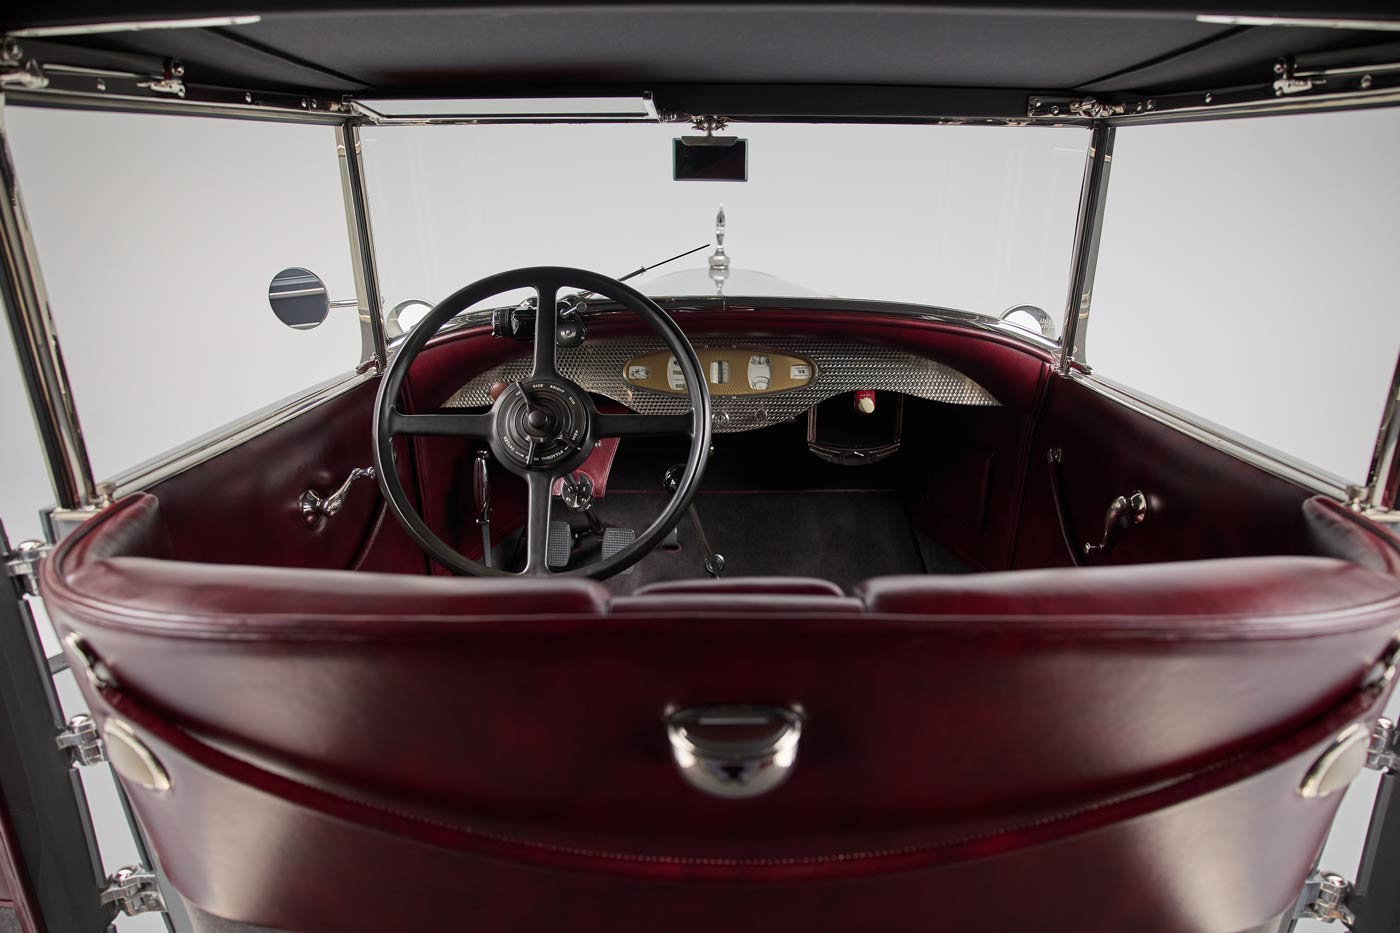 1928 Hudson Super Six Series O Convertible - The JBS Collection